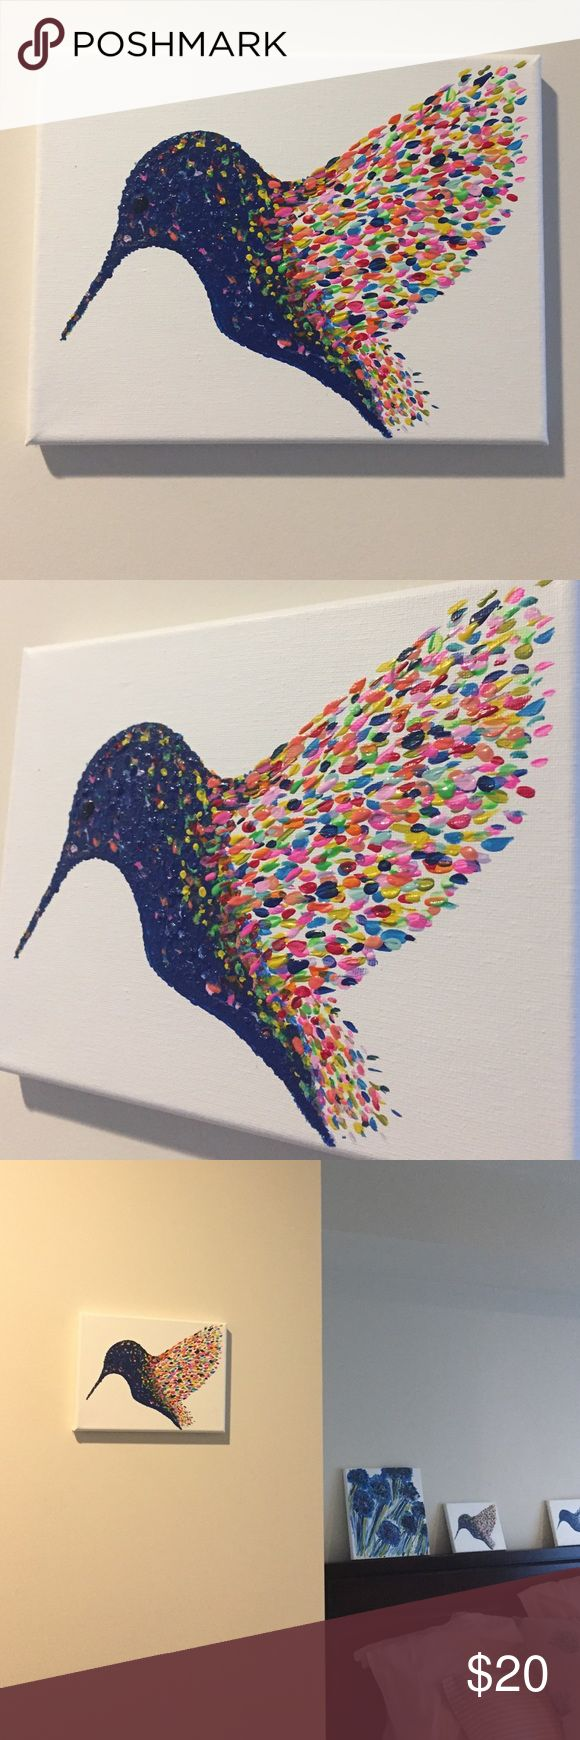 """Hummingbird Wall Art Multicoloured Hummingbird Wall Art Size 9x7"""", back stapled to a wooden frame, perfect gift to brighten up yours or someone's wall 😊 Allyamy Accessories"""